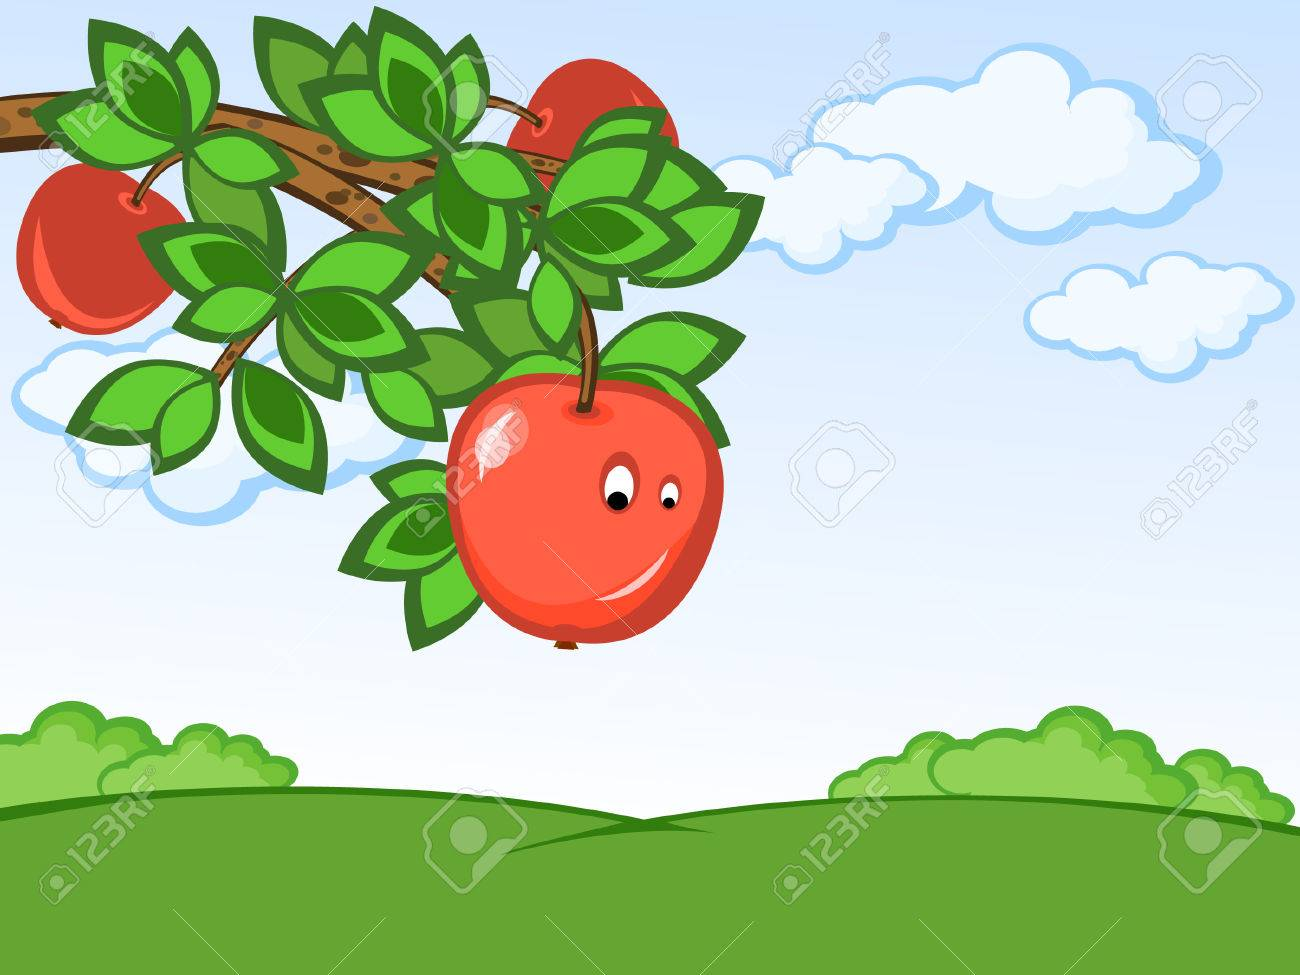 Rural landscape. Branch of a tree with apples. Comics. Stock Vector - 6923126